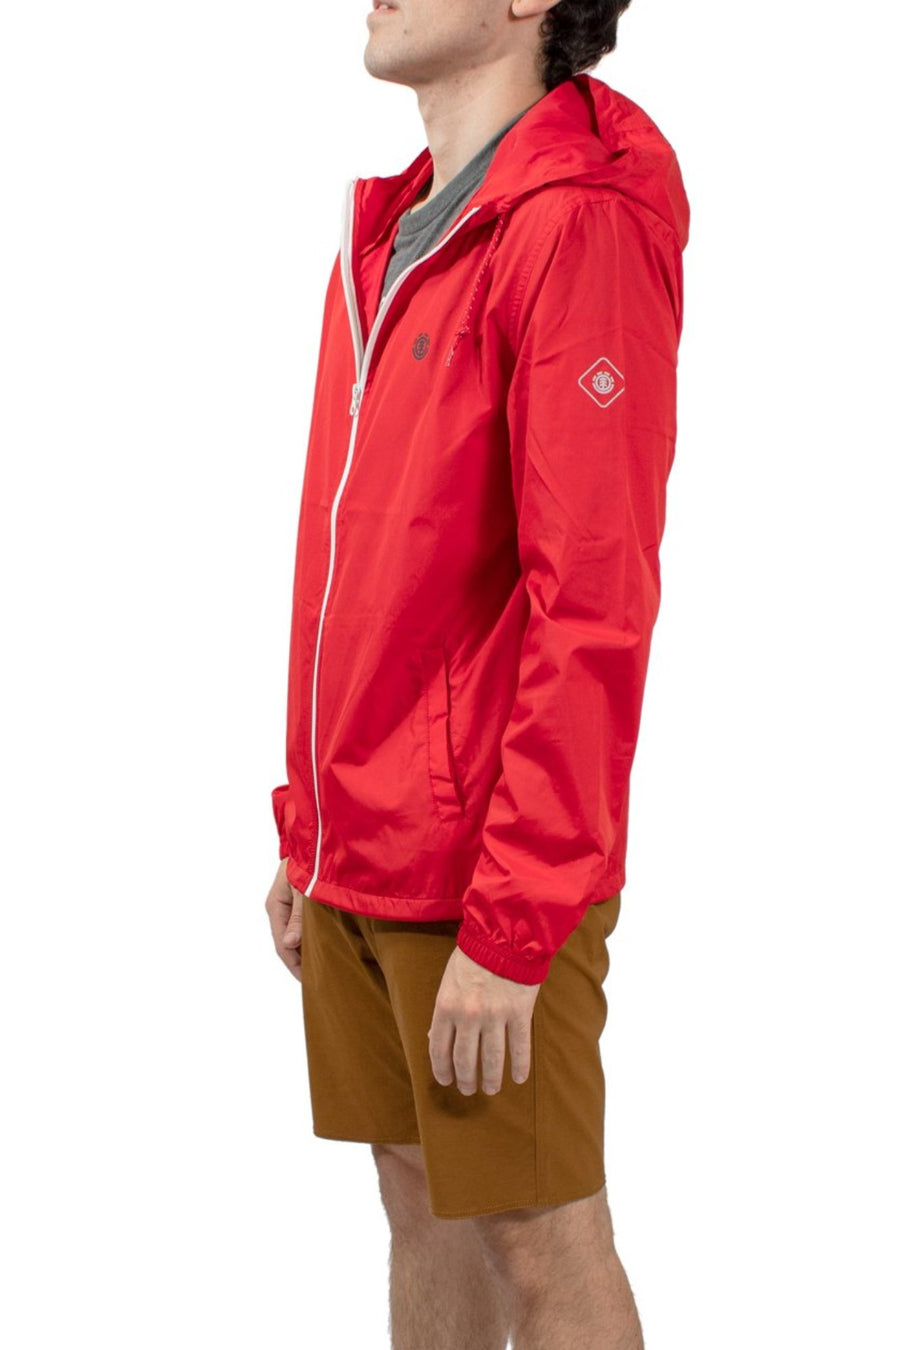 Element Alder Travel Well Jacket - Pompeian Red